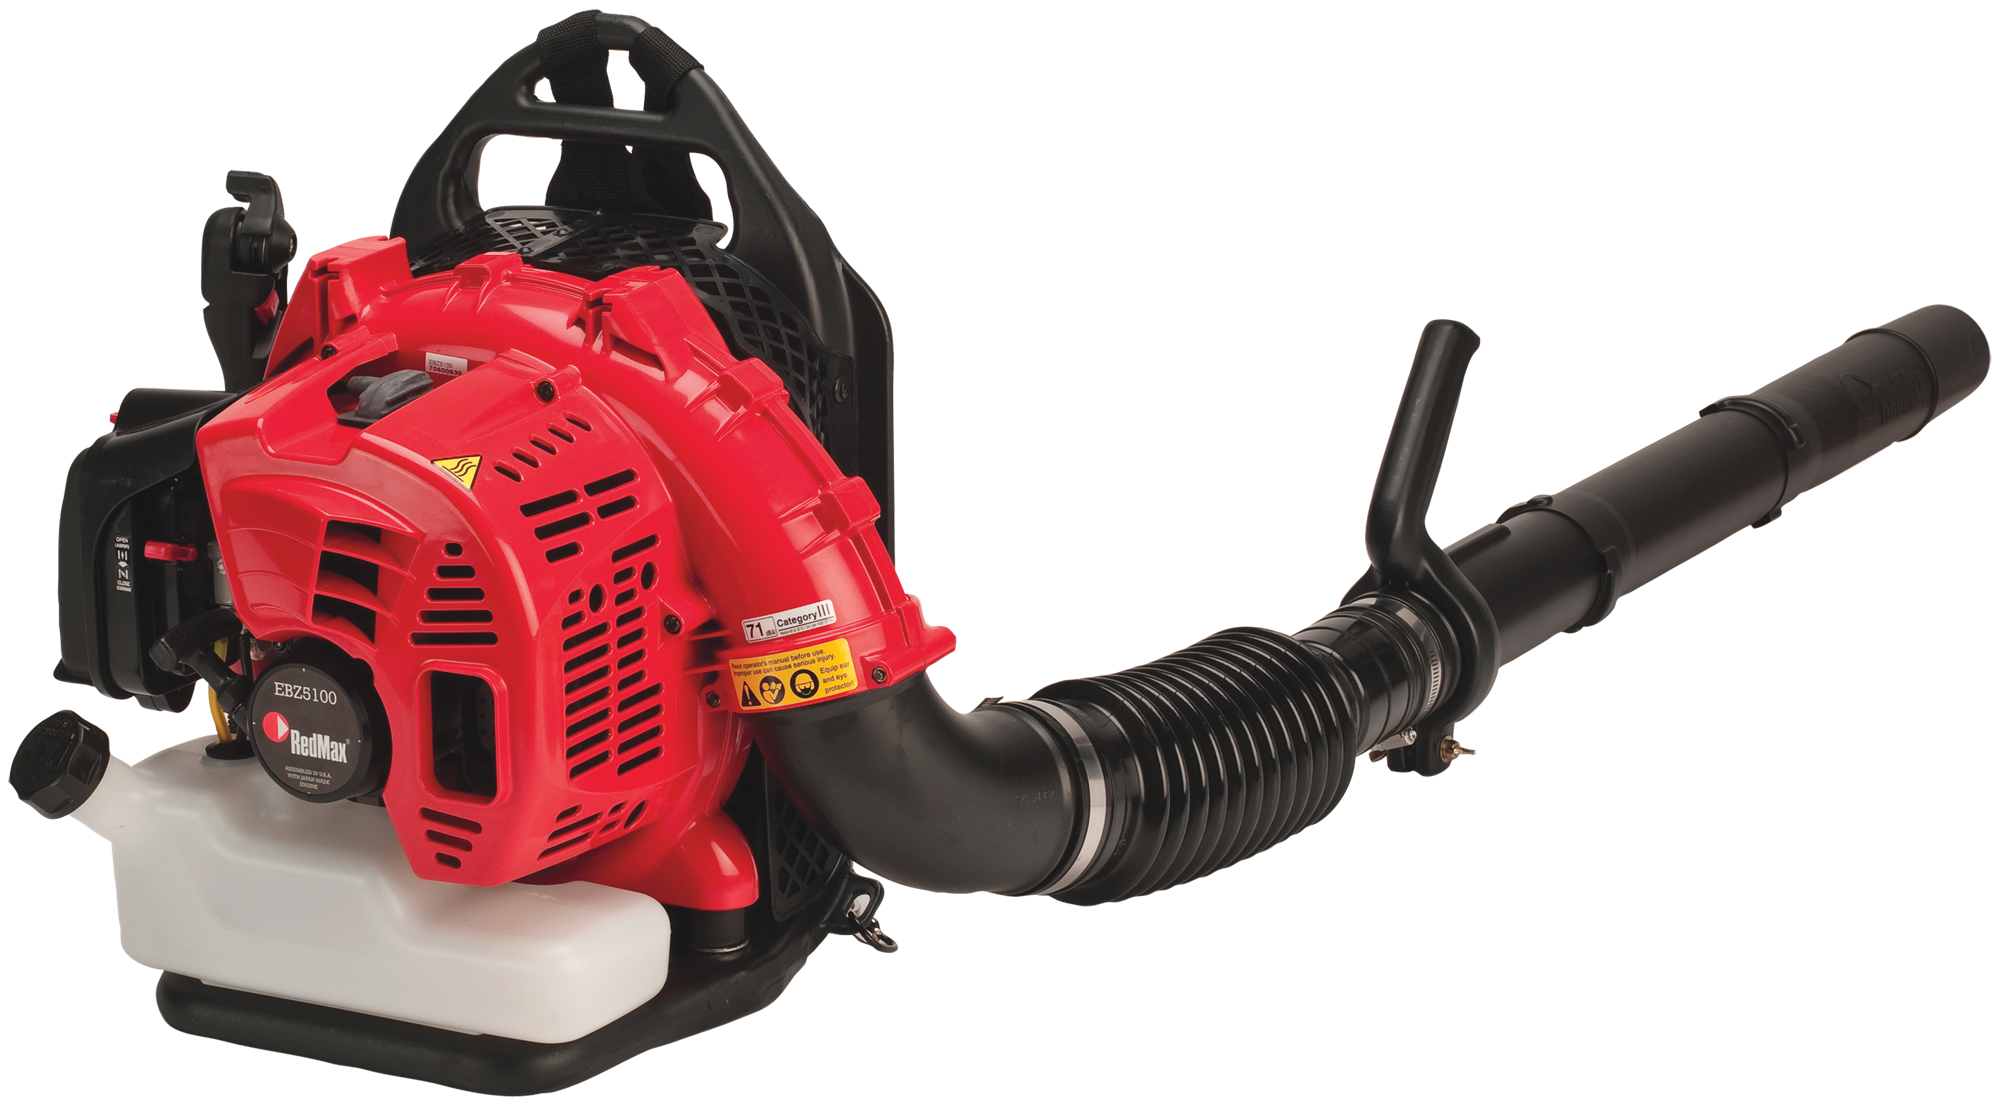 Professional equipment - Our blowers reach 1000 CFM. Average blowers max out around 600 CFM. (Volume of Air Moved).